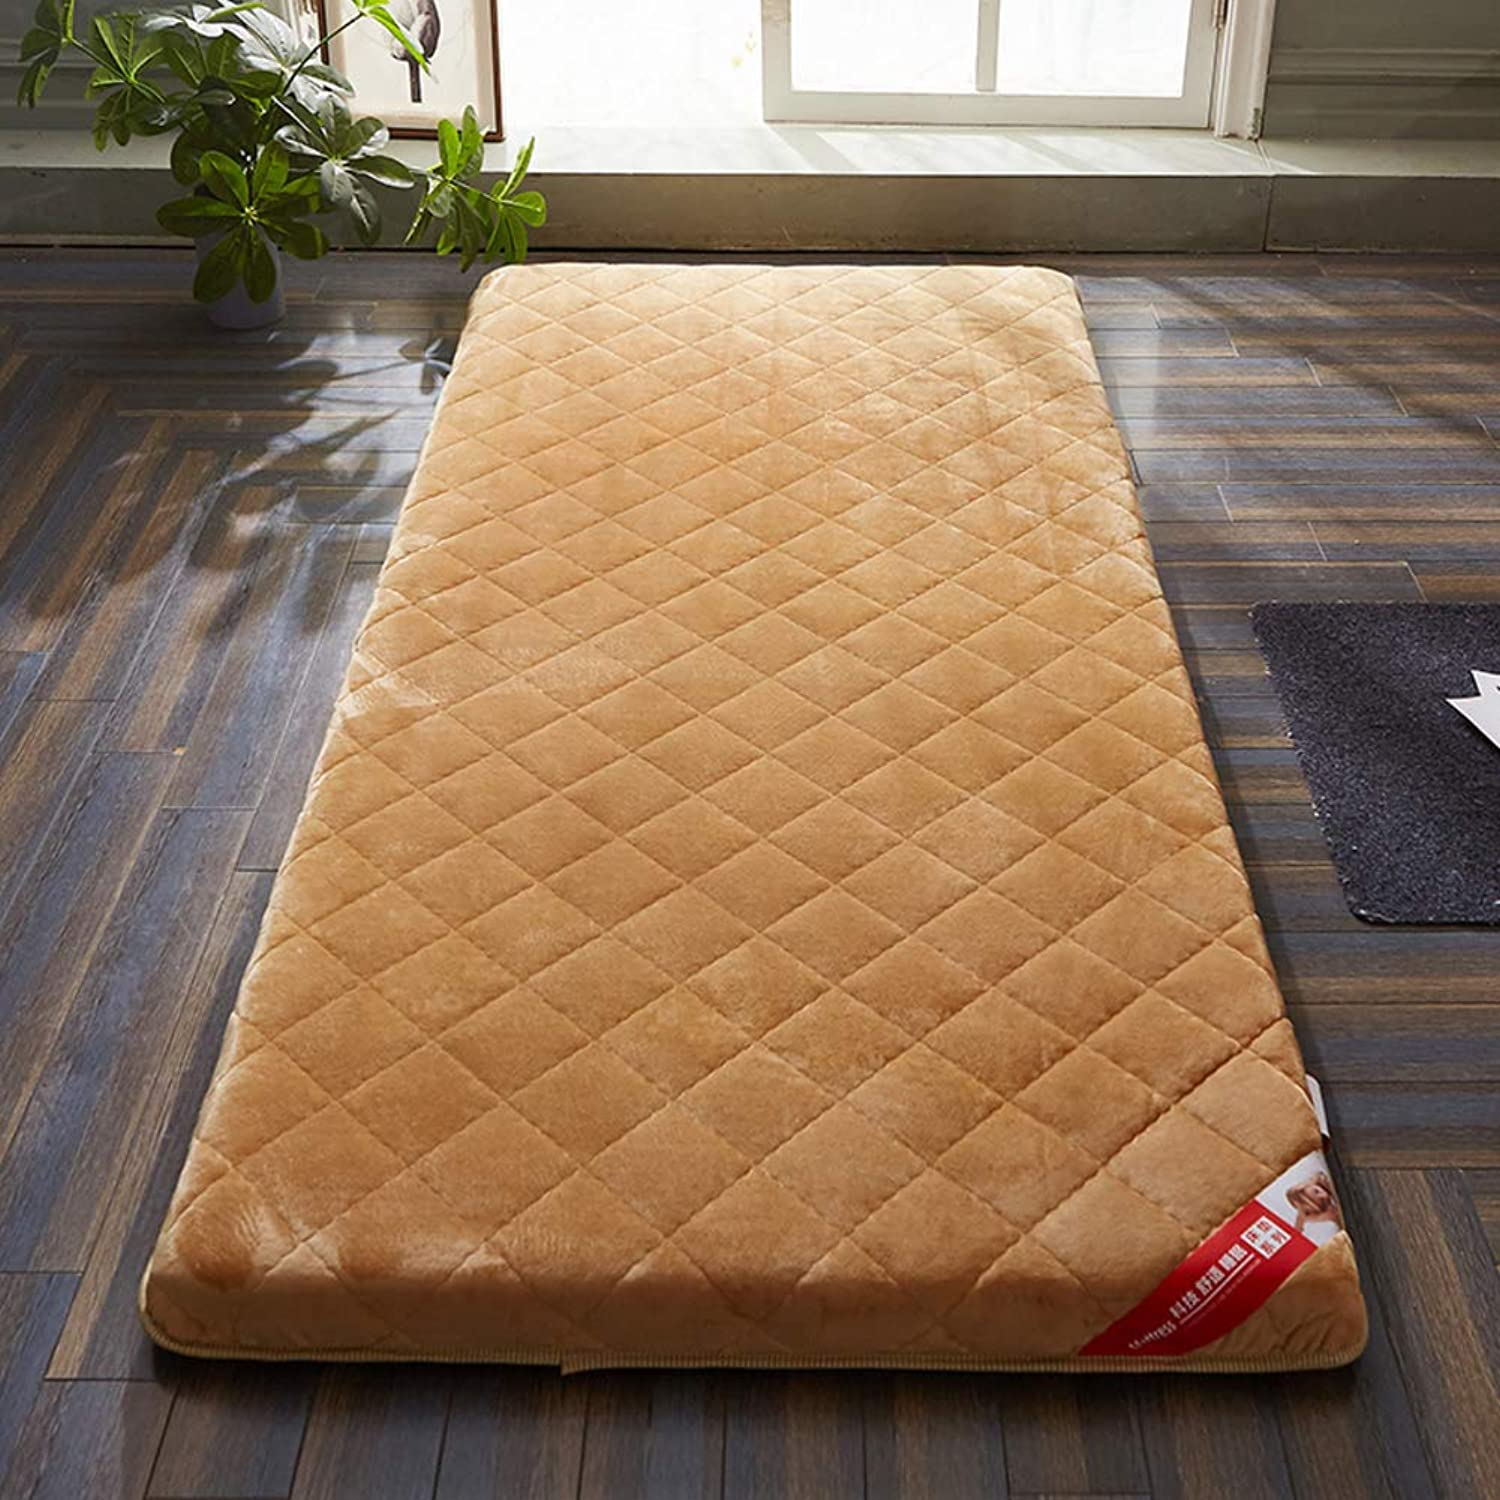 Breathable Japanese Traditional futon Mattress,Folding Compact Fluffy Thick 6cm 10cm Non-Slip Tatami Student dormitory-6cm Thick Light tan Full 120x200cm(47x79inch)